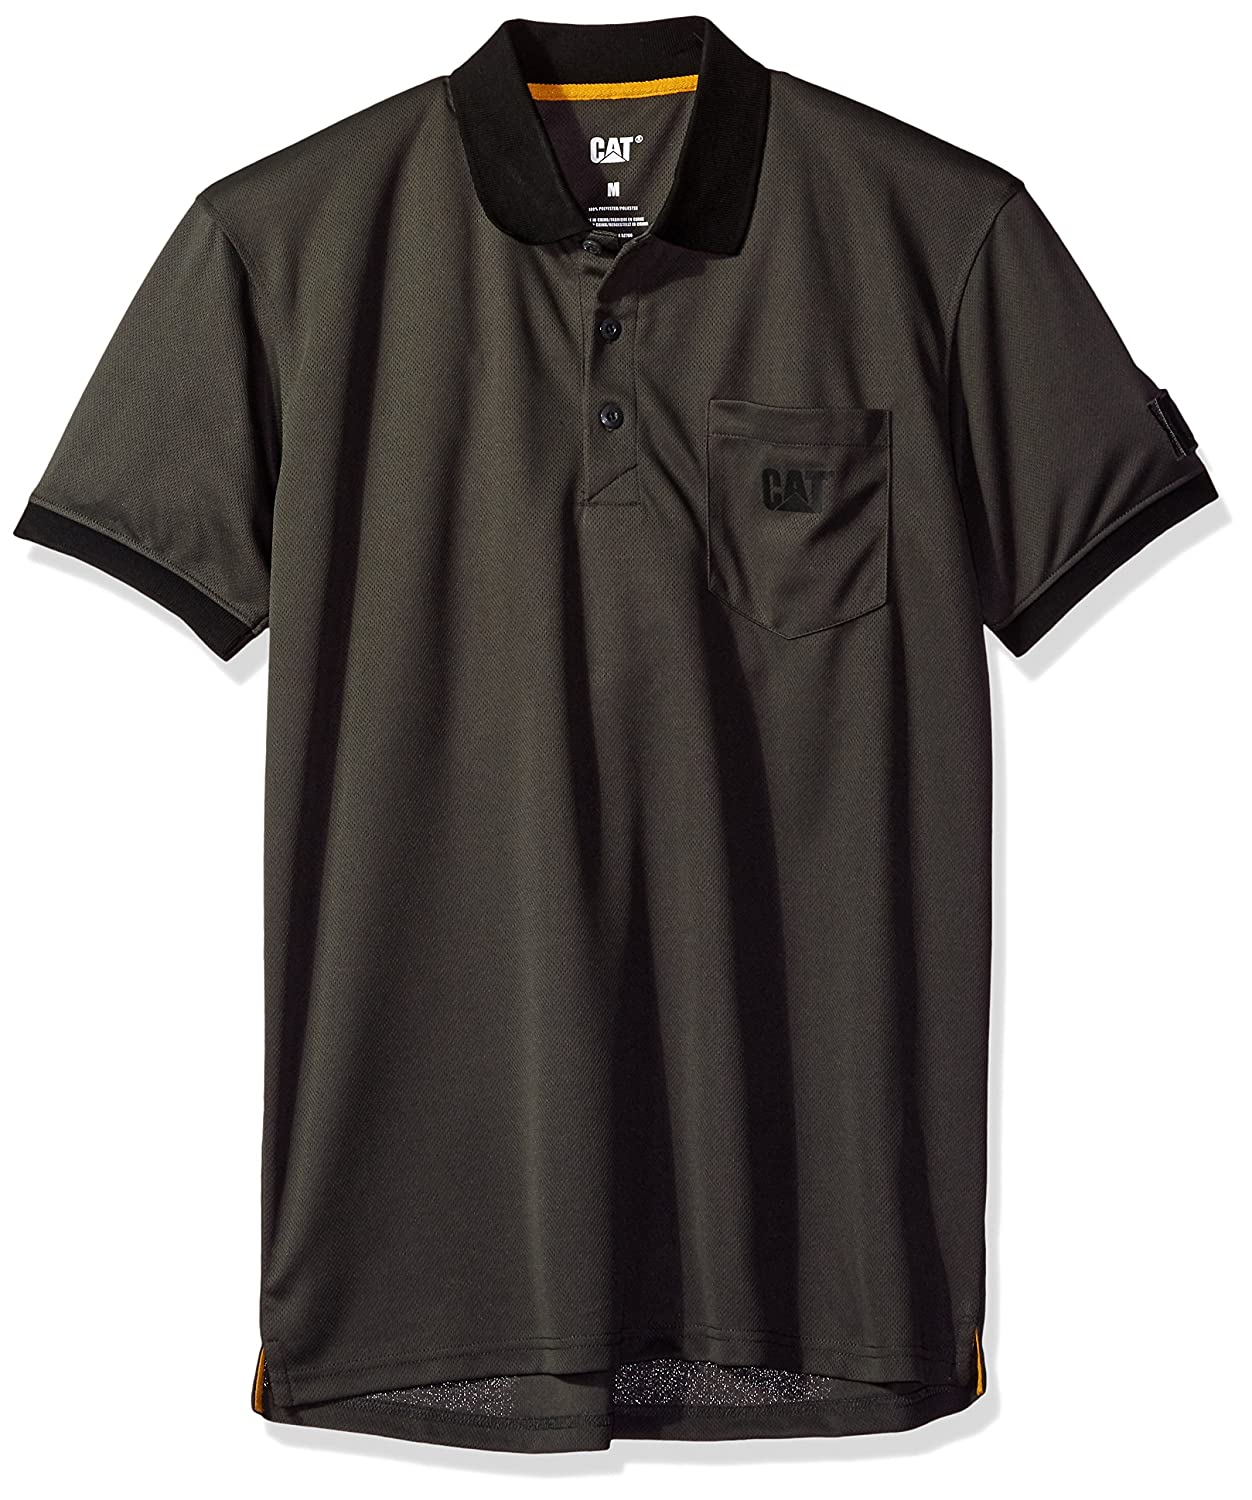 Caterpillar Mens Snag-Free Performance Polo CAT Men' s Sportswear & Accessories 1620007